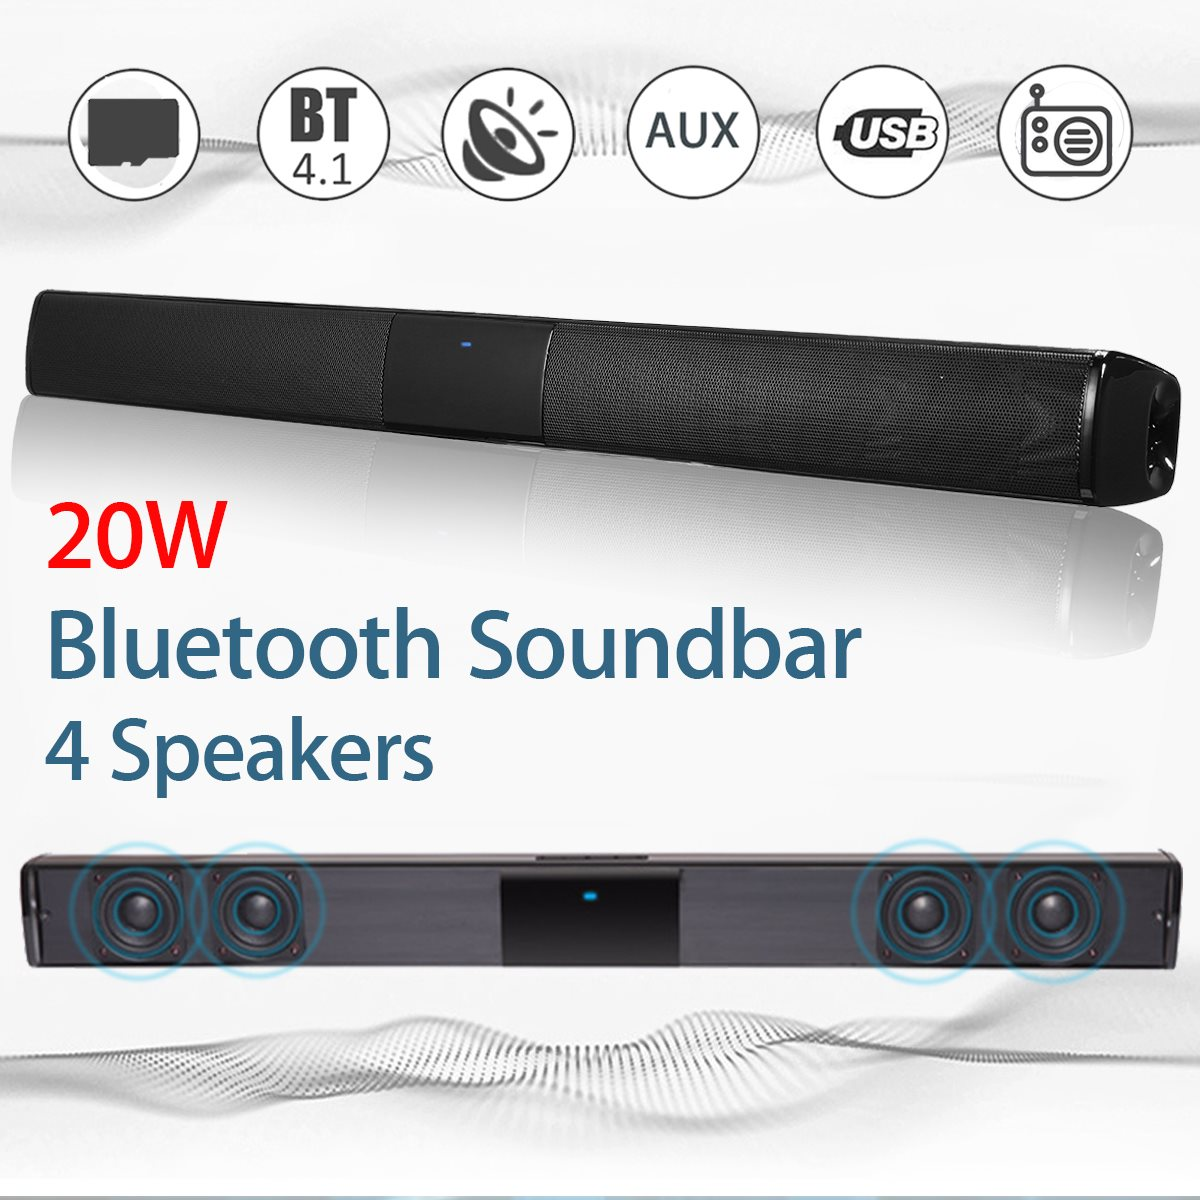 Kinco 20W Wireless Bluetooth Soundbar Stereo Hi-Fi Speaker Subwoofer FM TF AUX USB dooya high quality electric super quiet curtain track auto motorized curtaintrack for remote control electric curtain motor